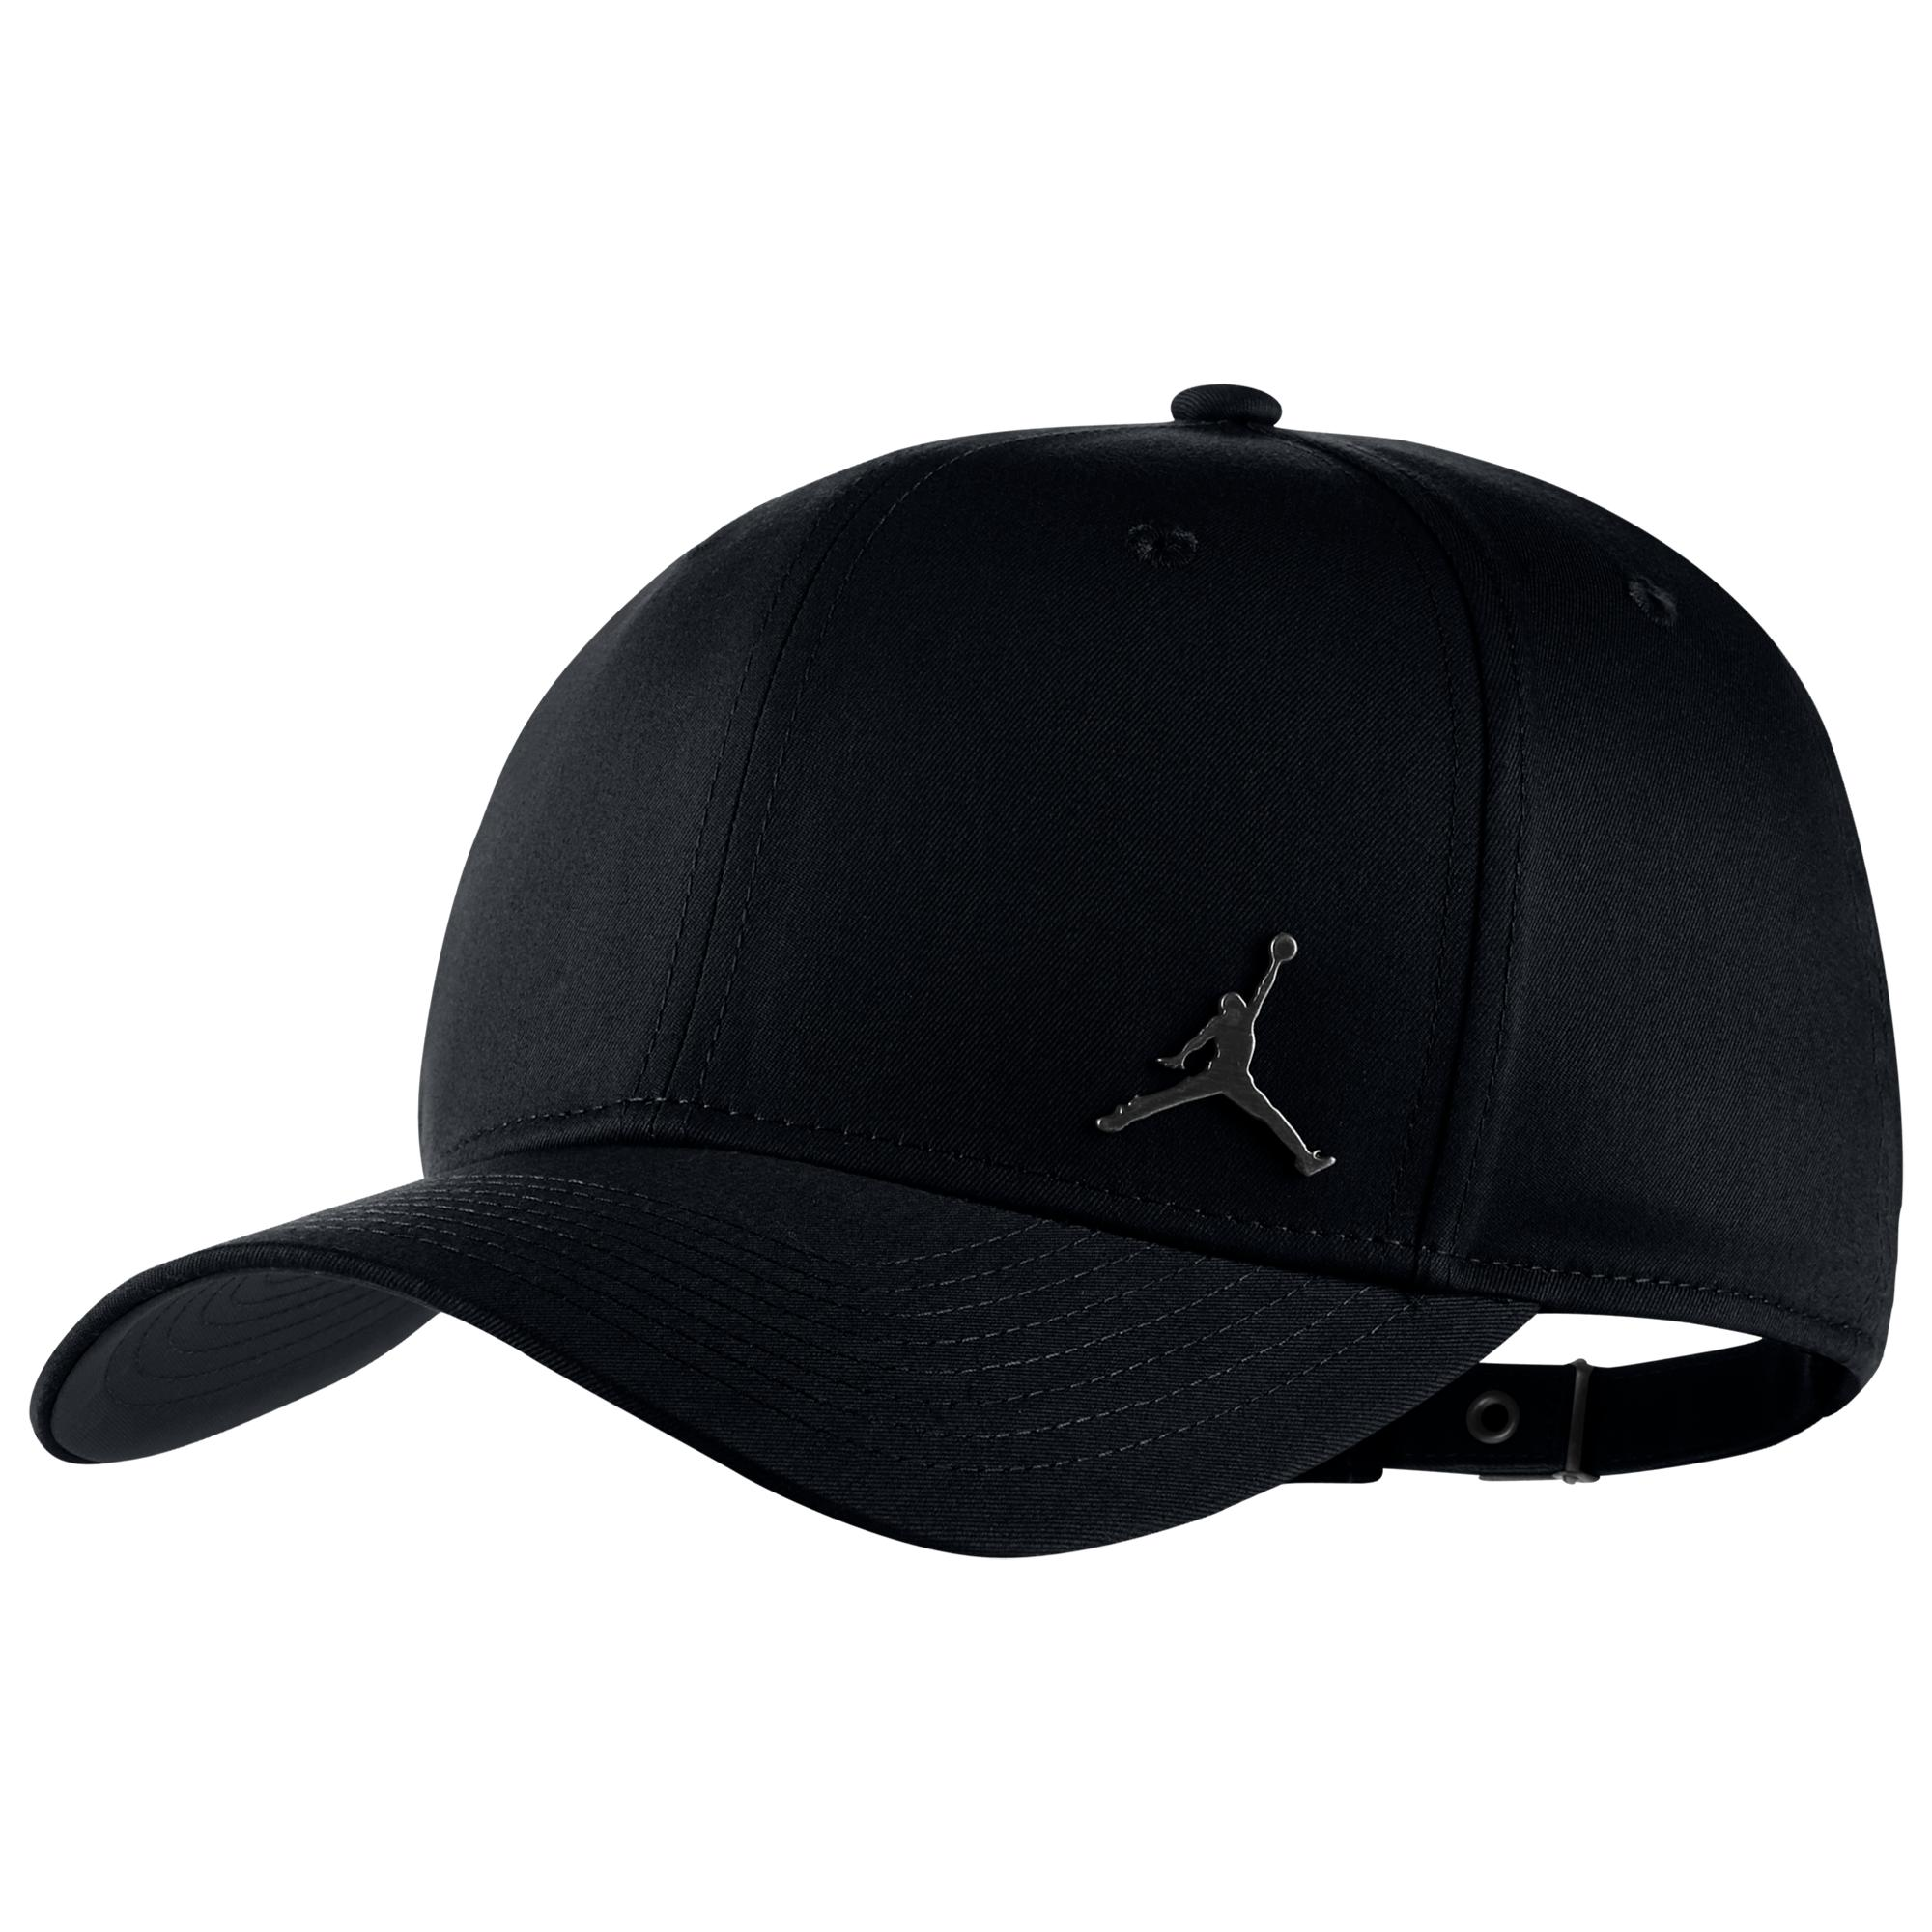 timeless design c9c48 d44e5 Nike - Black Classic 99 Adjustable Cap for Men - Lyst. View fullscreen